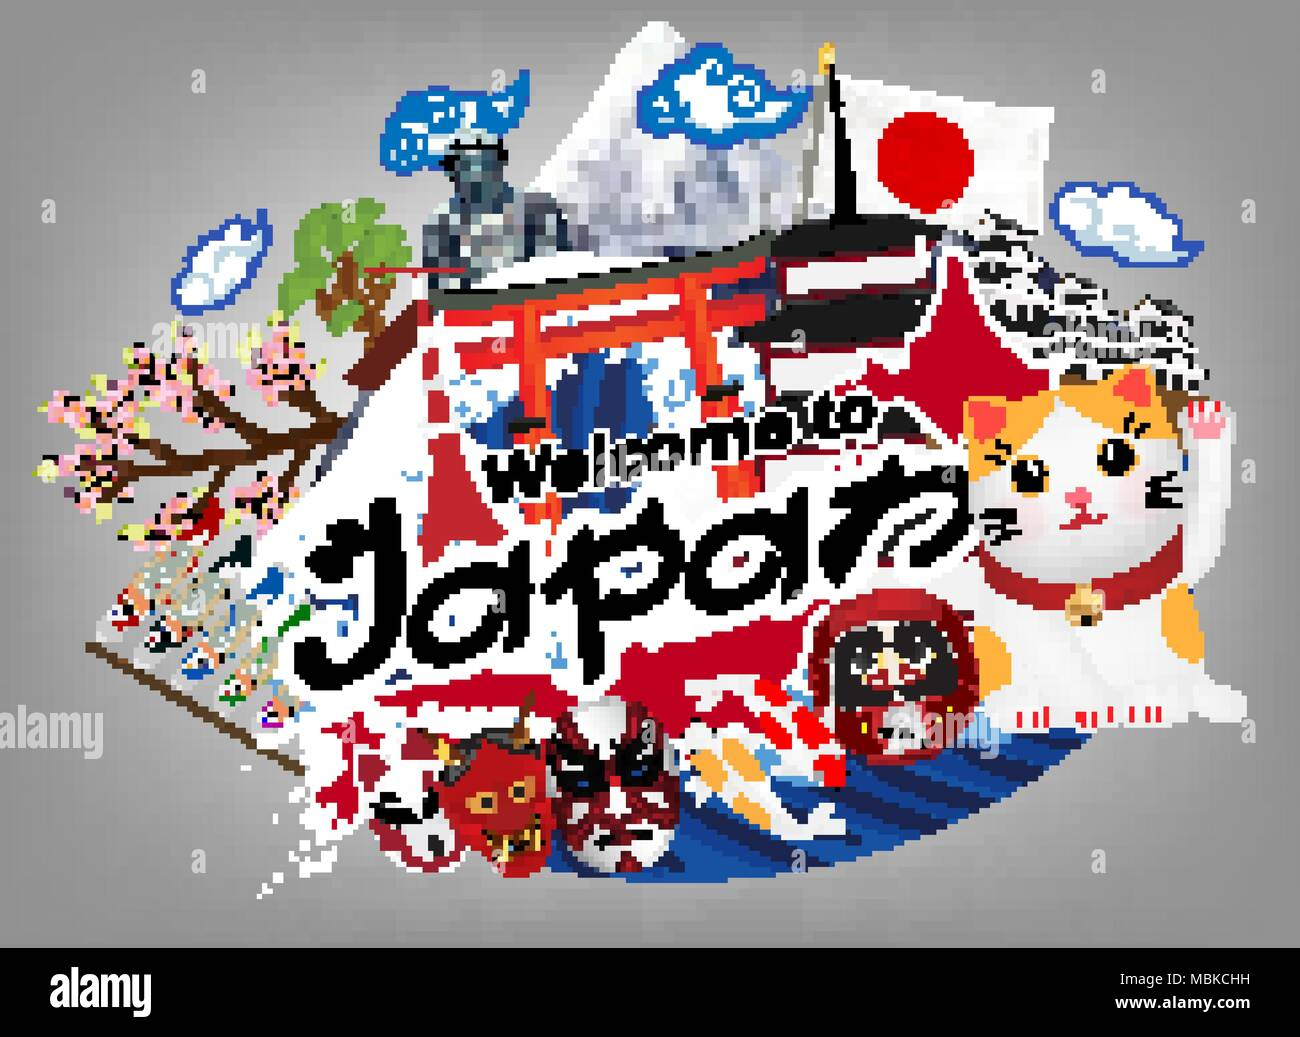 welcome to japan logo with japan object & landmark - Stock Vector